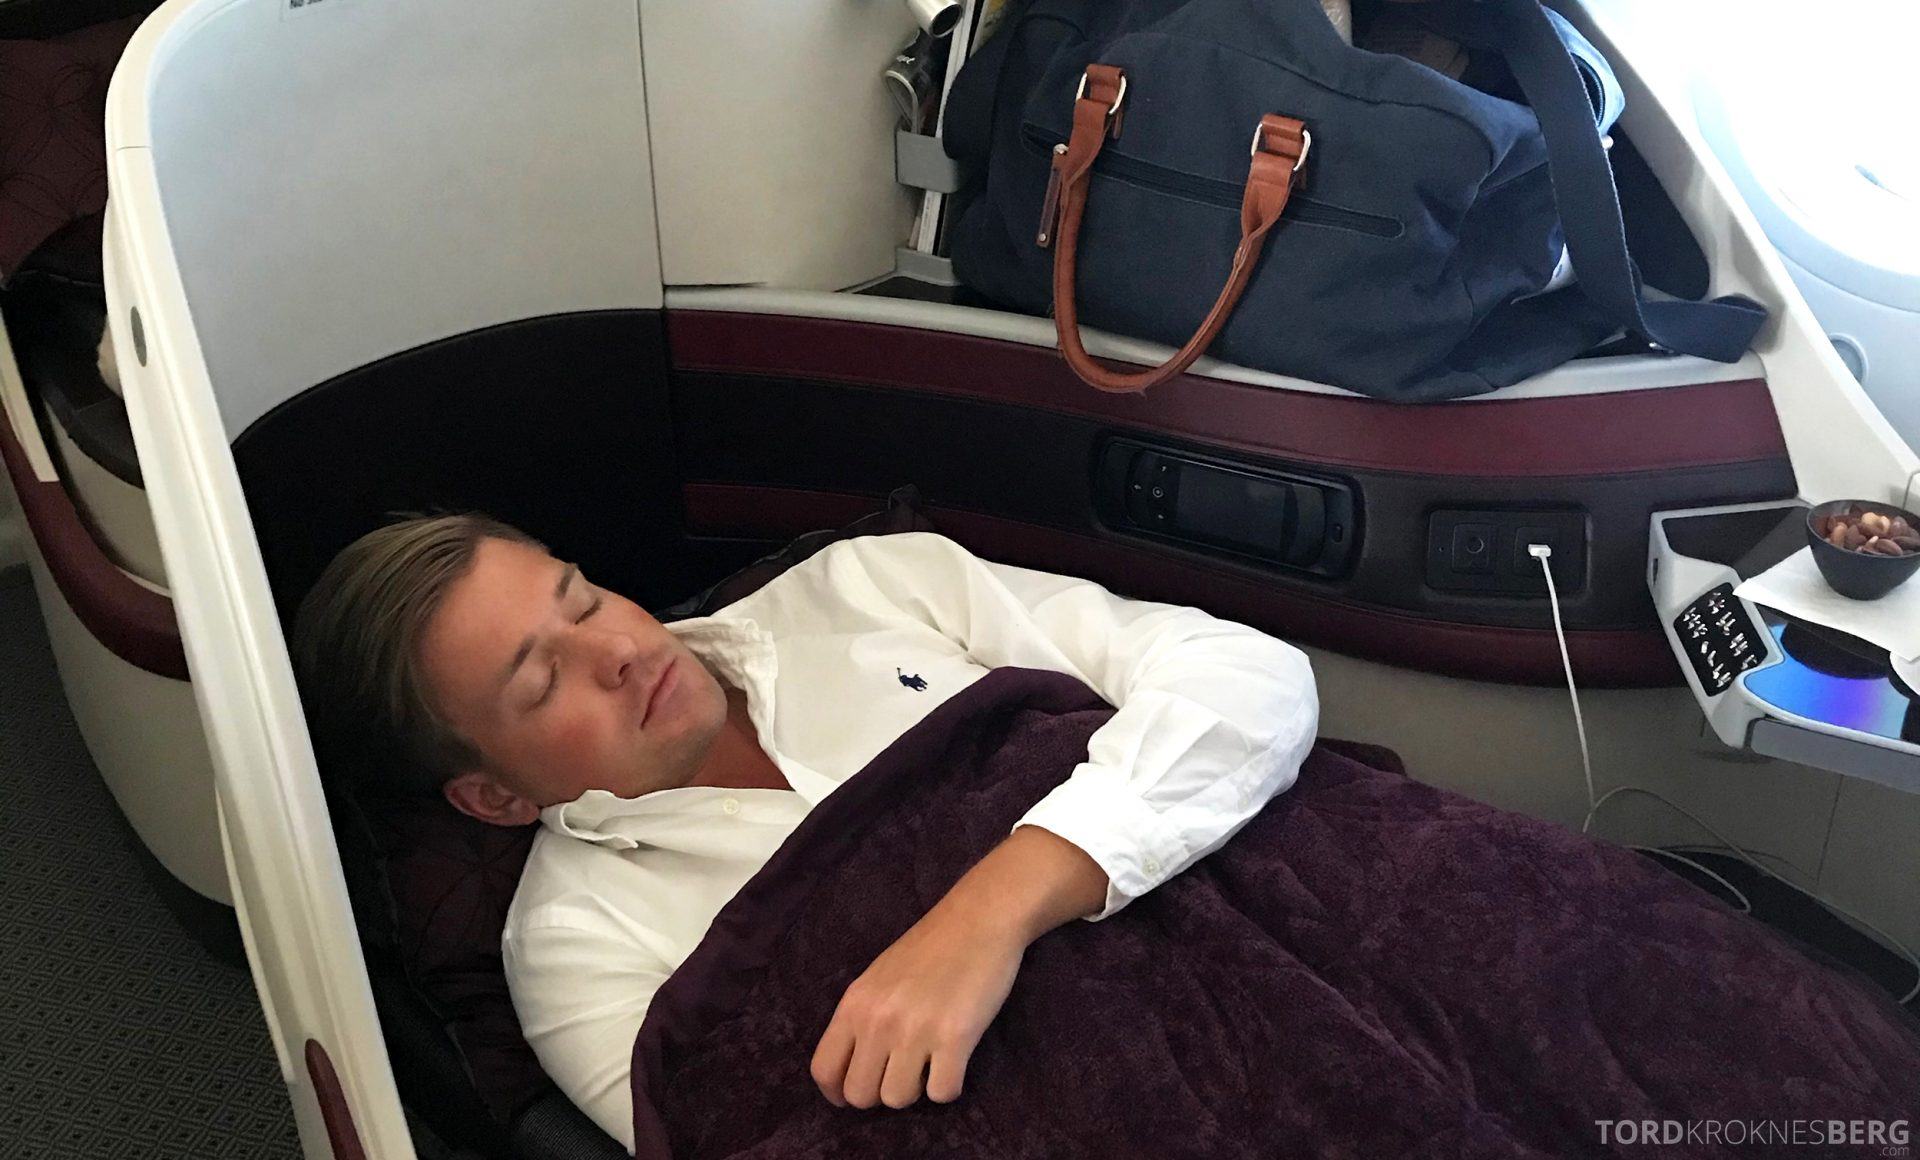 Qatar Airways Business Class Oslo Doha seng Tord Kroknes Berg